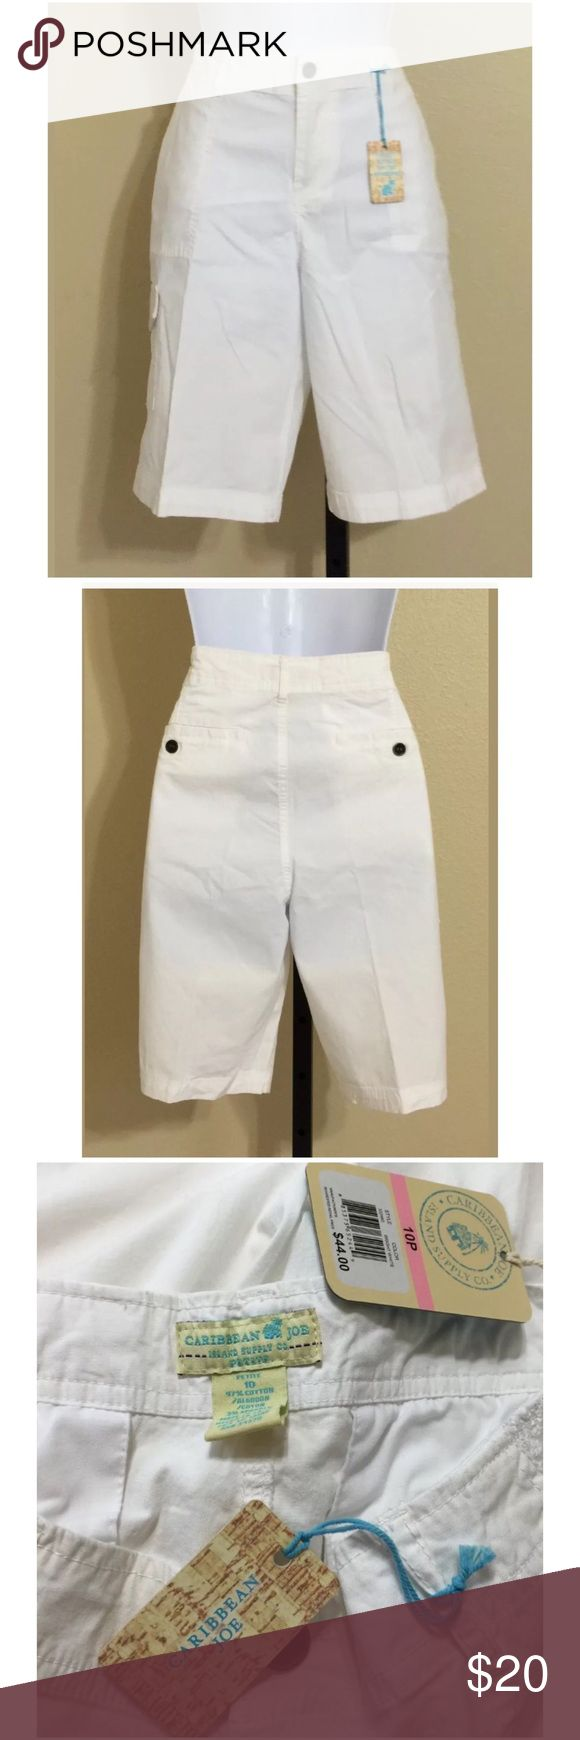 Caribbean Joe Shorts Size 10P Caribbean Joe Petite Women's Bermuda, Walking Shorts Size 10P White Zip Front 1 External Metal Button closure 2 Front Patch Pockets 2 Rear Pockets With Metal Button Closure Extra Buttons Included Belt Loops 1 Front / side Thigh Pocket With Flap & Metal Snap Closure Machine Washable 97% Cotton 3% Spandex Inseam Approx. 10 Inches Rise Approx. 10 Inches Waist Approx. 31 Inches Hips Approx. 39 Inches Cuff Approx. 18 Inches Compare Measurements To Your Own Well…